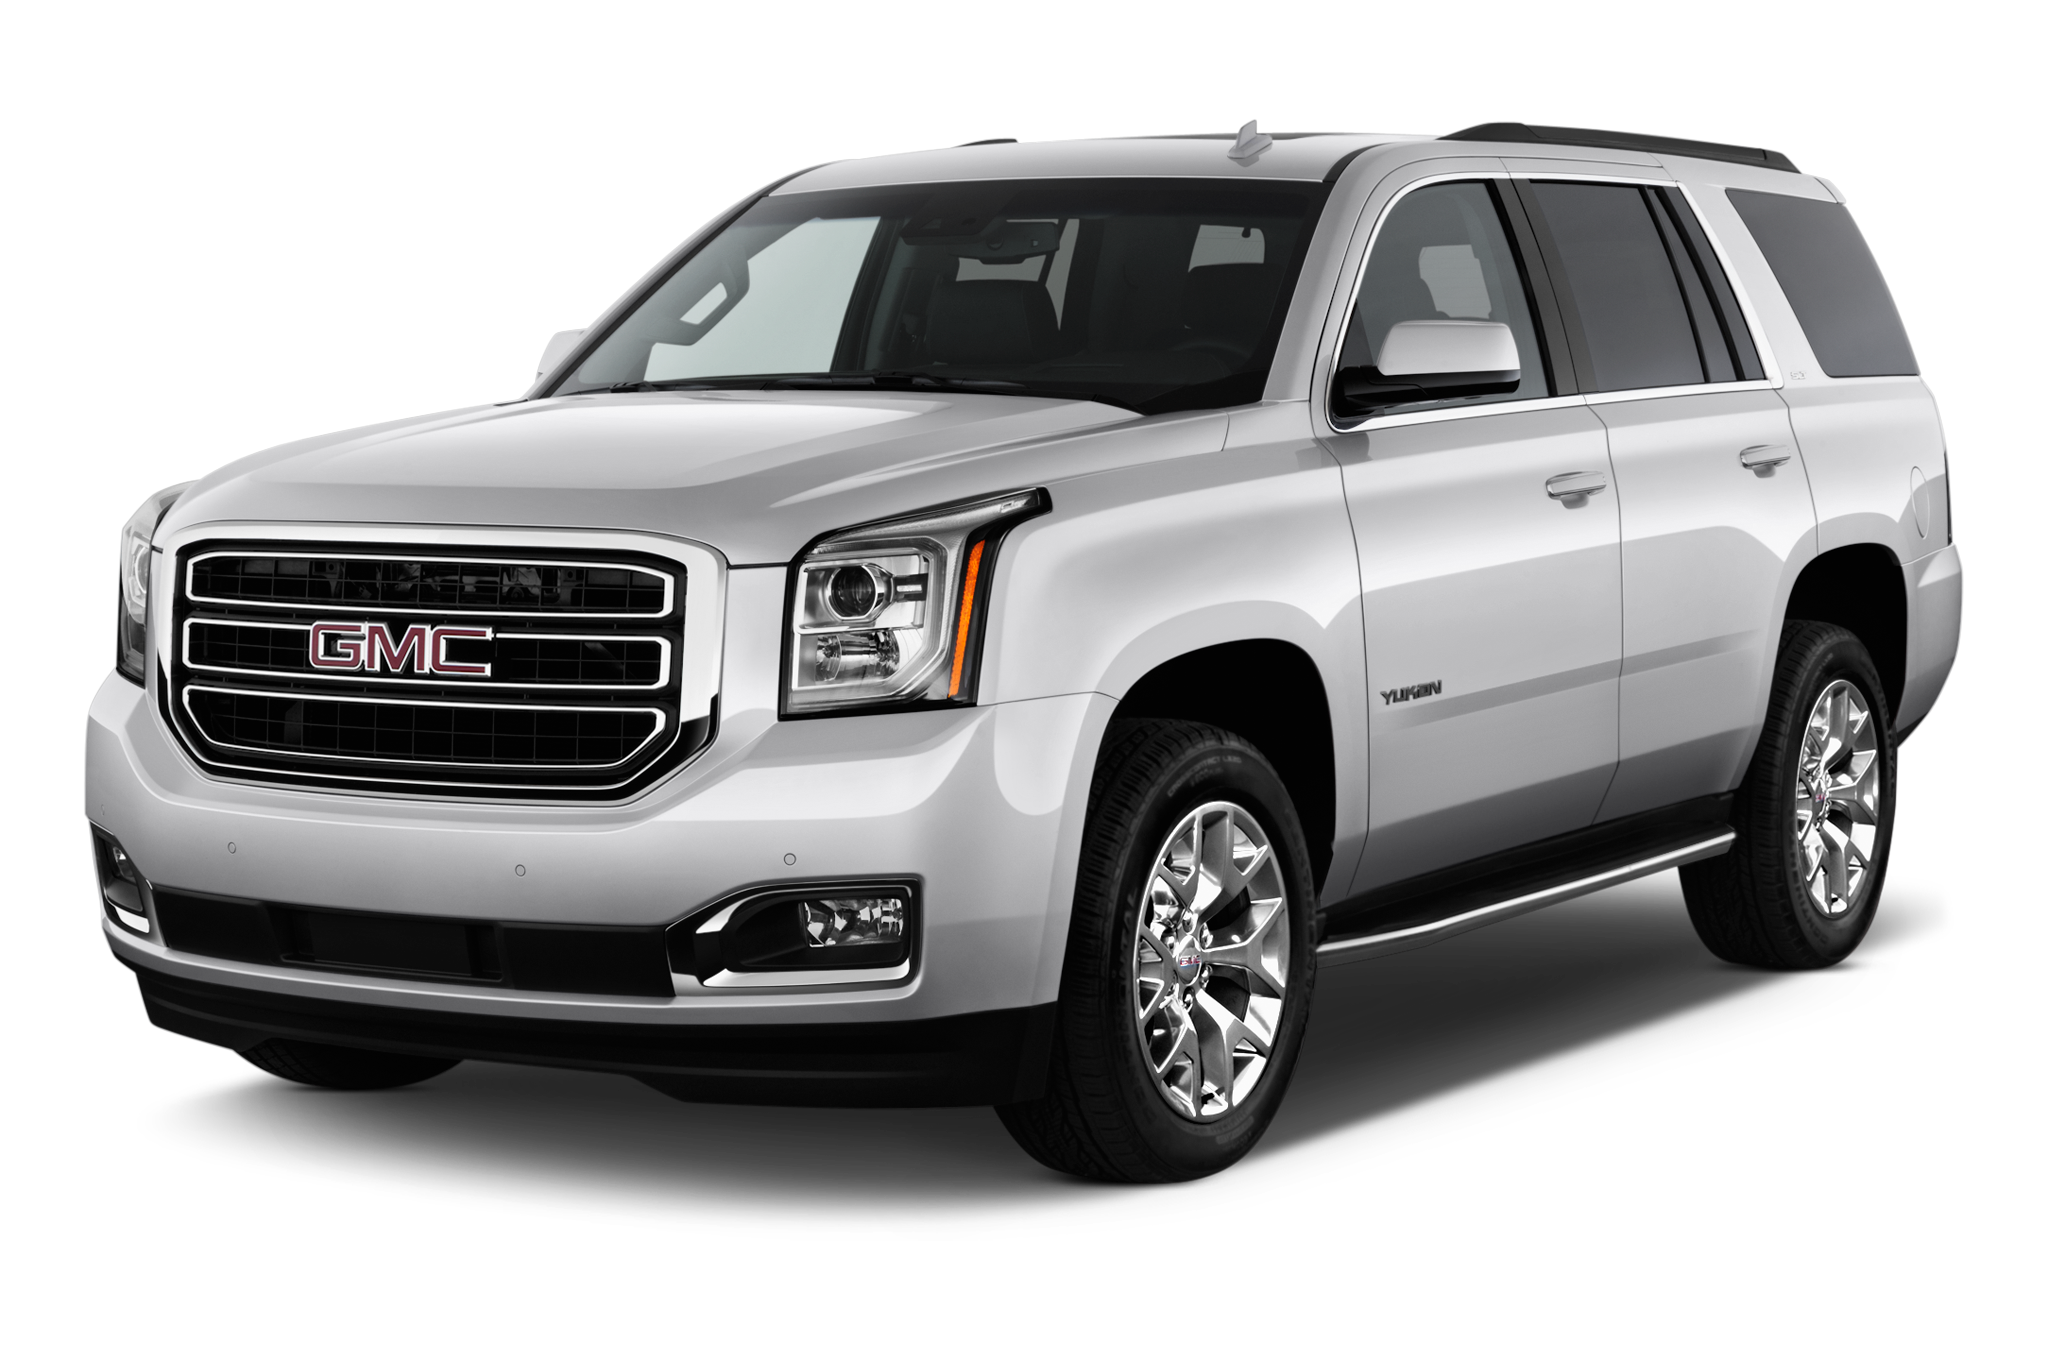 Popular 2016 GMC Yukon SLT Premium Gets The Denali Styling Treatment